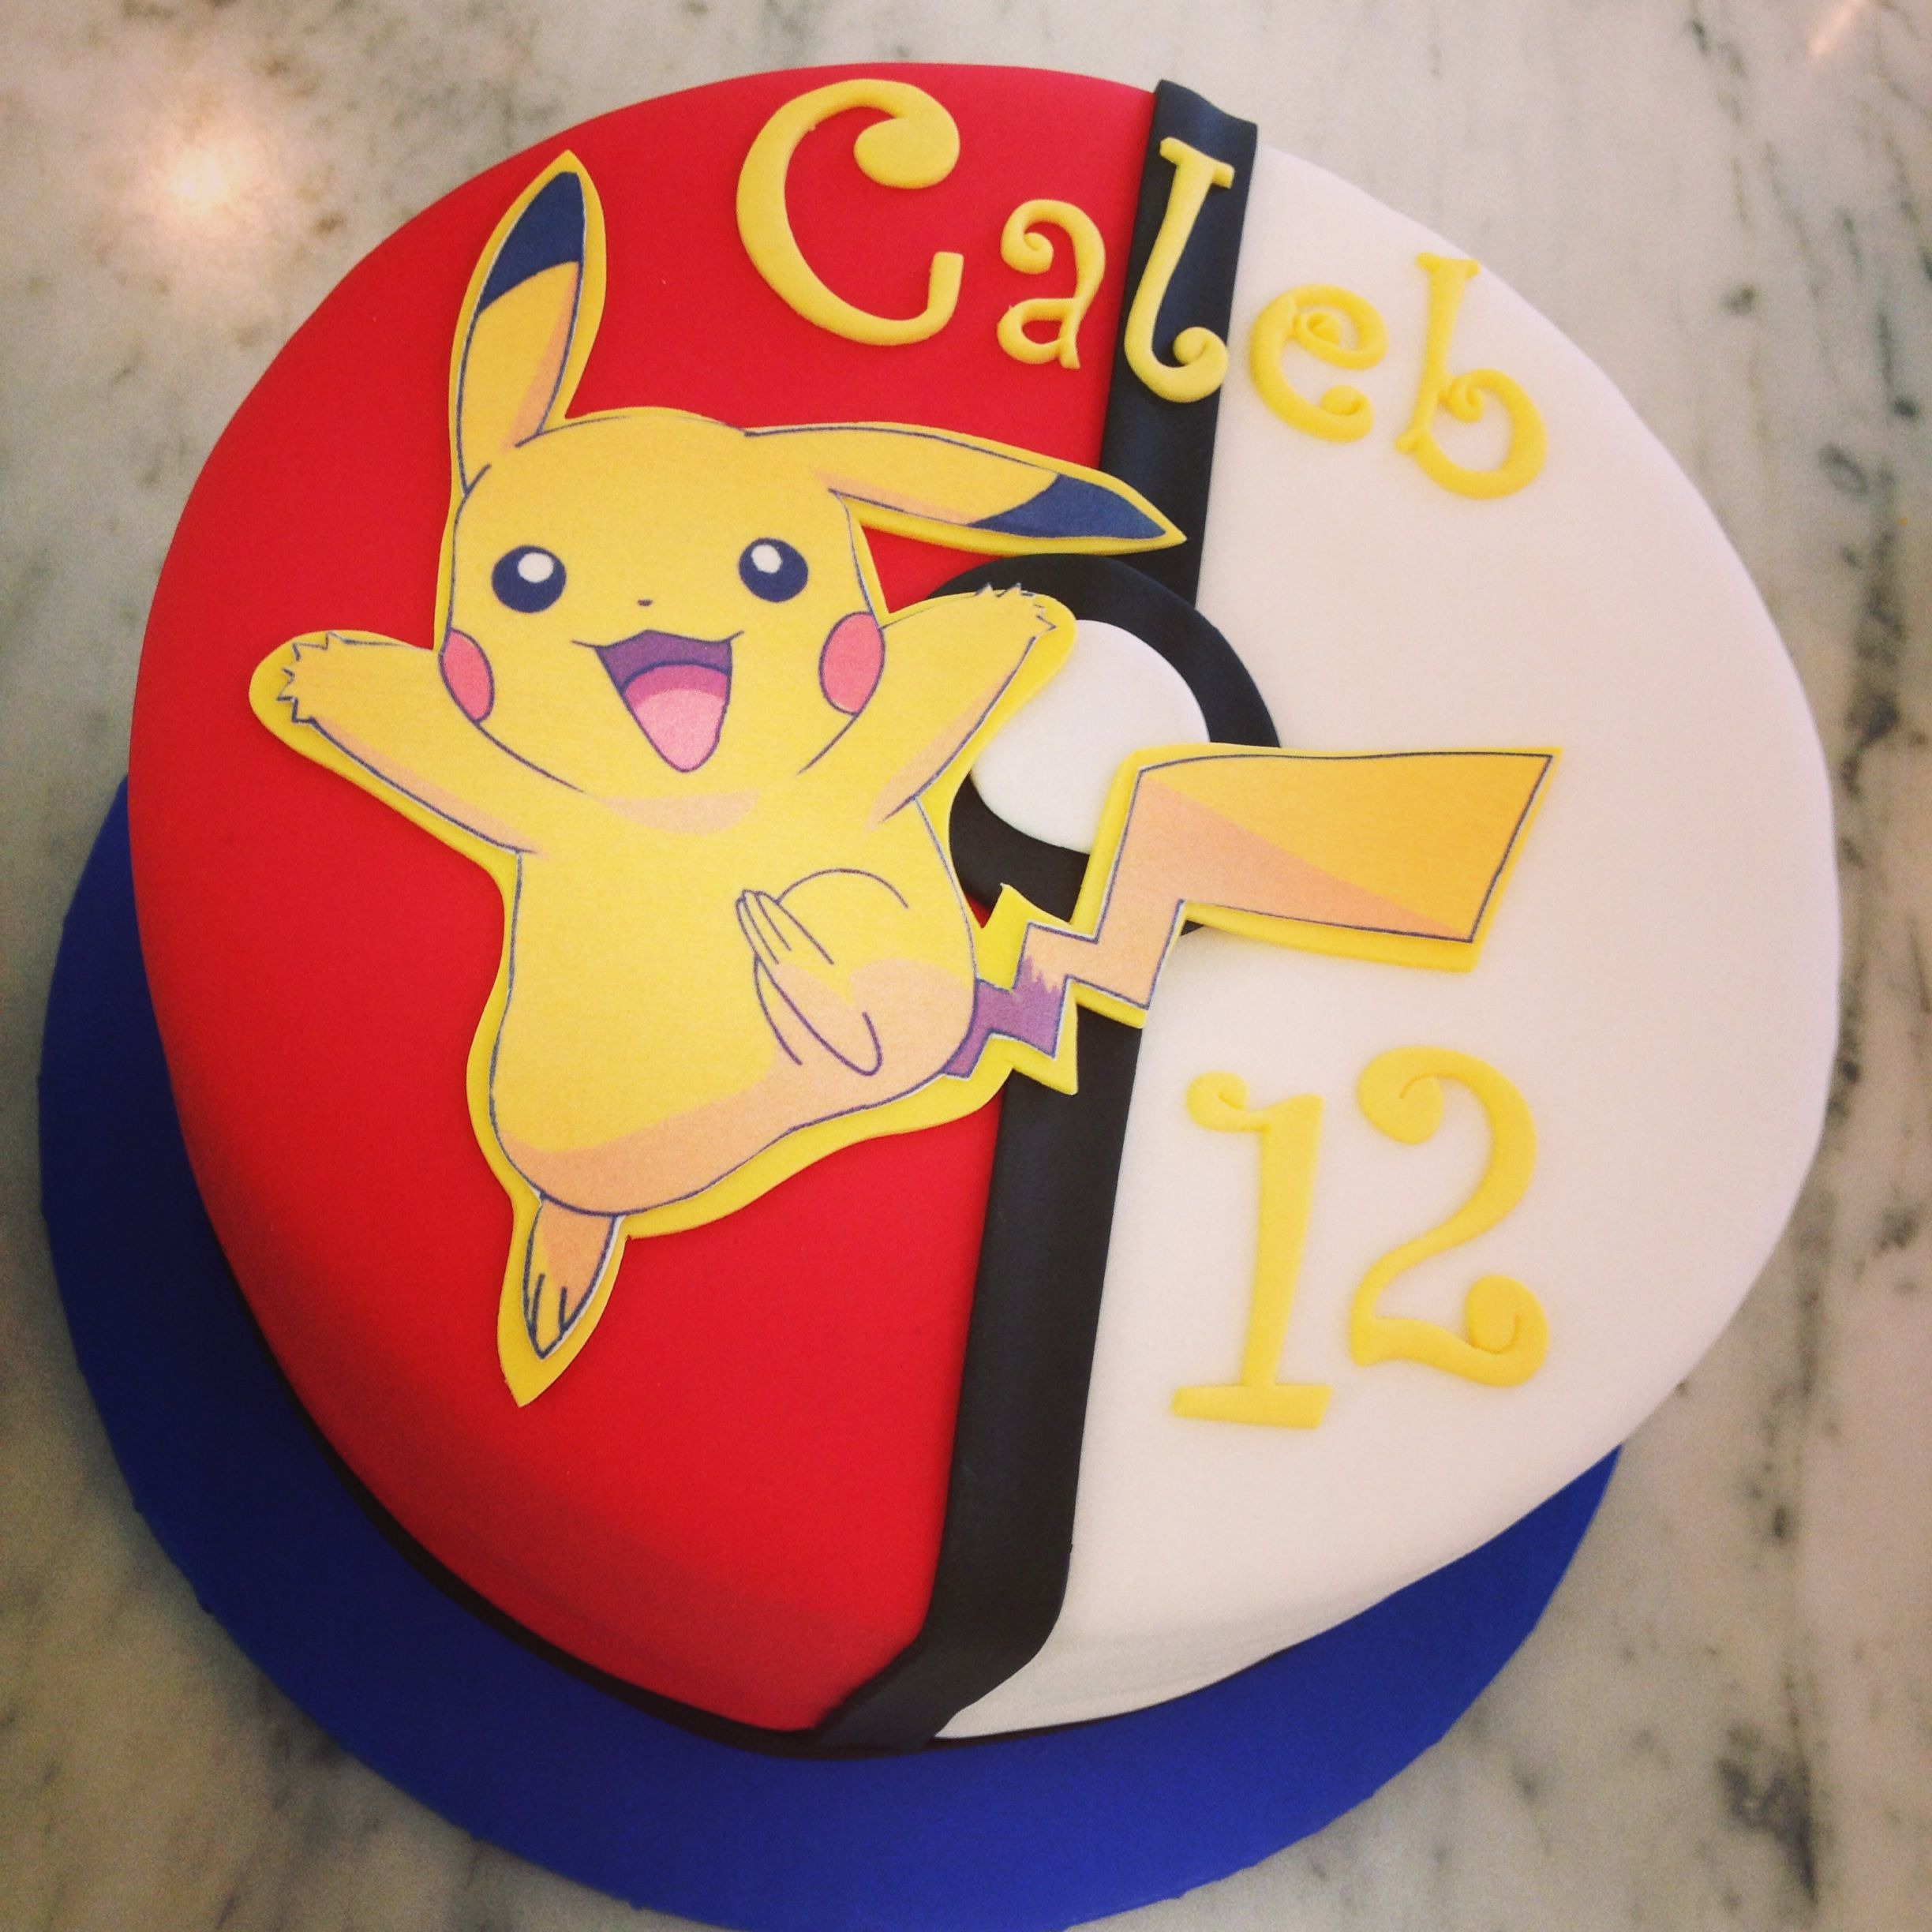 Prime The Pikachu Cake Sweet Marys New Haven Ct Pokemon Birthday Personalised Birthday Cards Veneteletsinfo